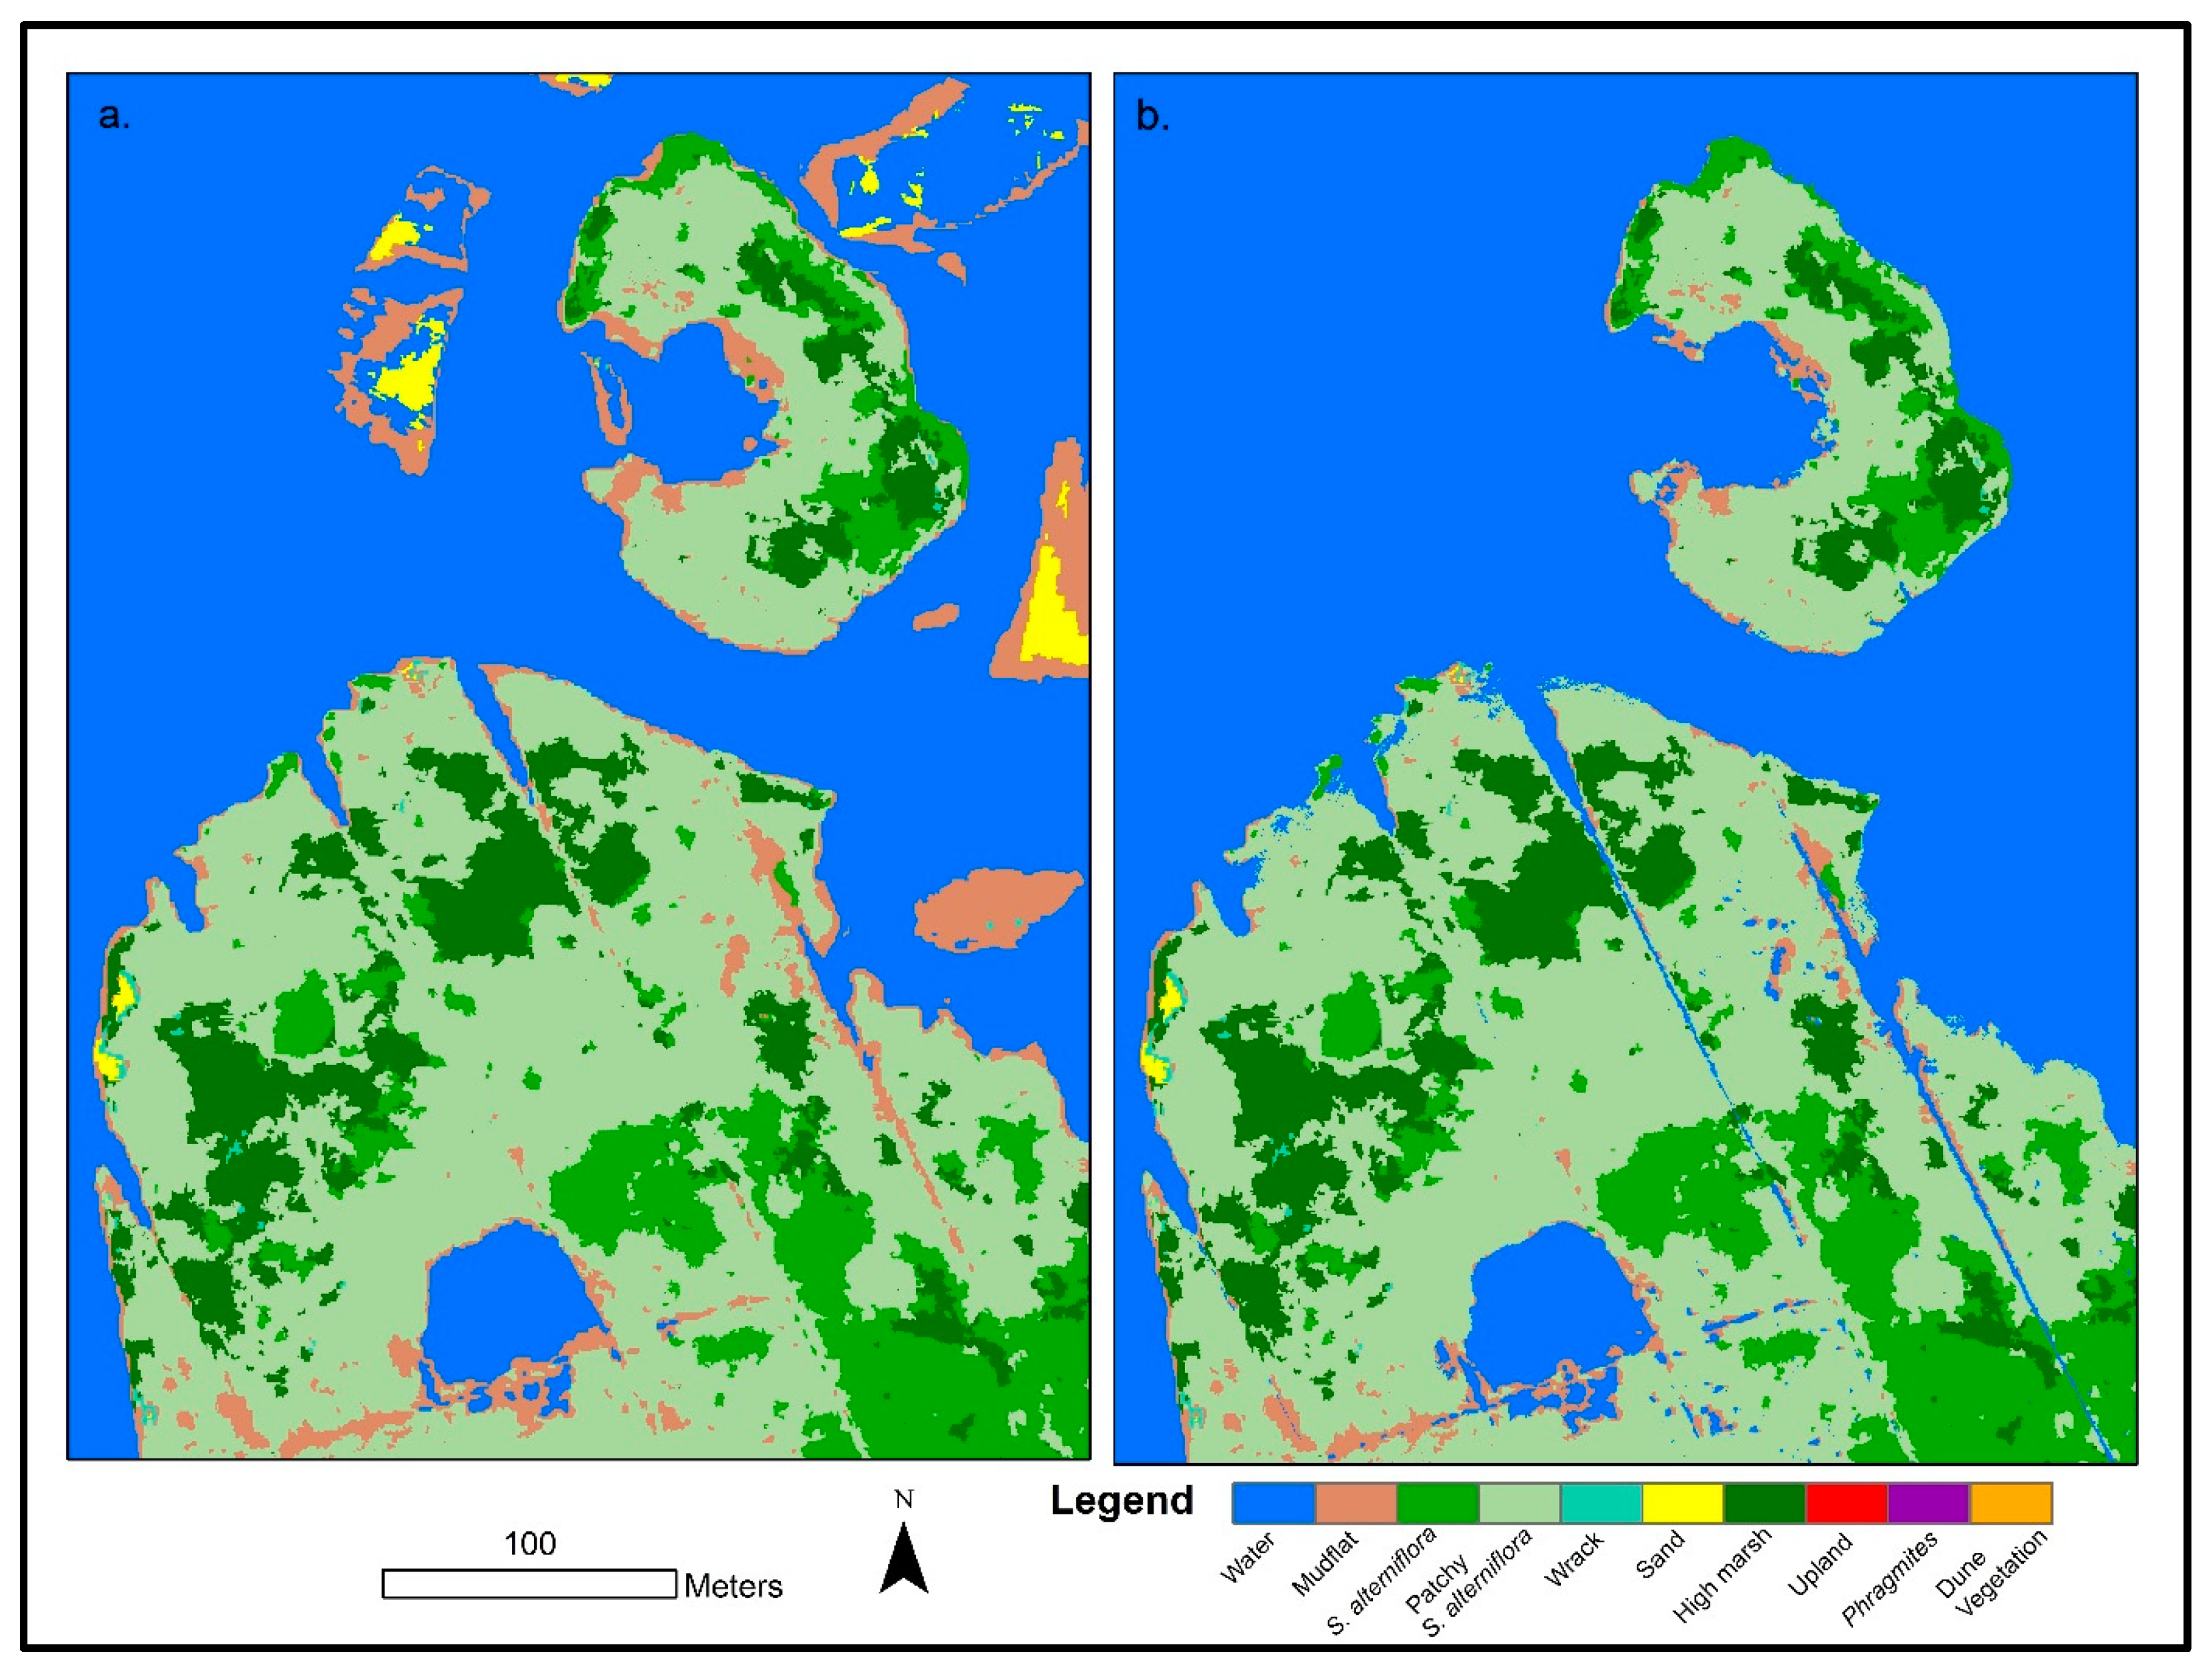 Remote Sensing | Free Full-Text | High Spatial Resolution ... on temperate forest world map, geo world map, true scale world map, open ocean world map, estuary biome world map, madagascar location in world map, atoll world map, tropical forest world map, flight around the world map, intertidal zone world map, coral reef world map, correct size world map, freshwater wetlands world map, mangrove forest world map,